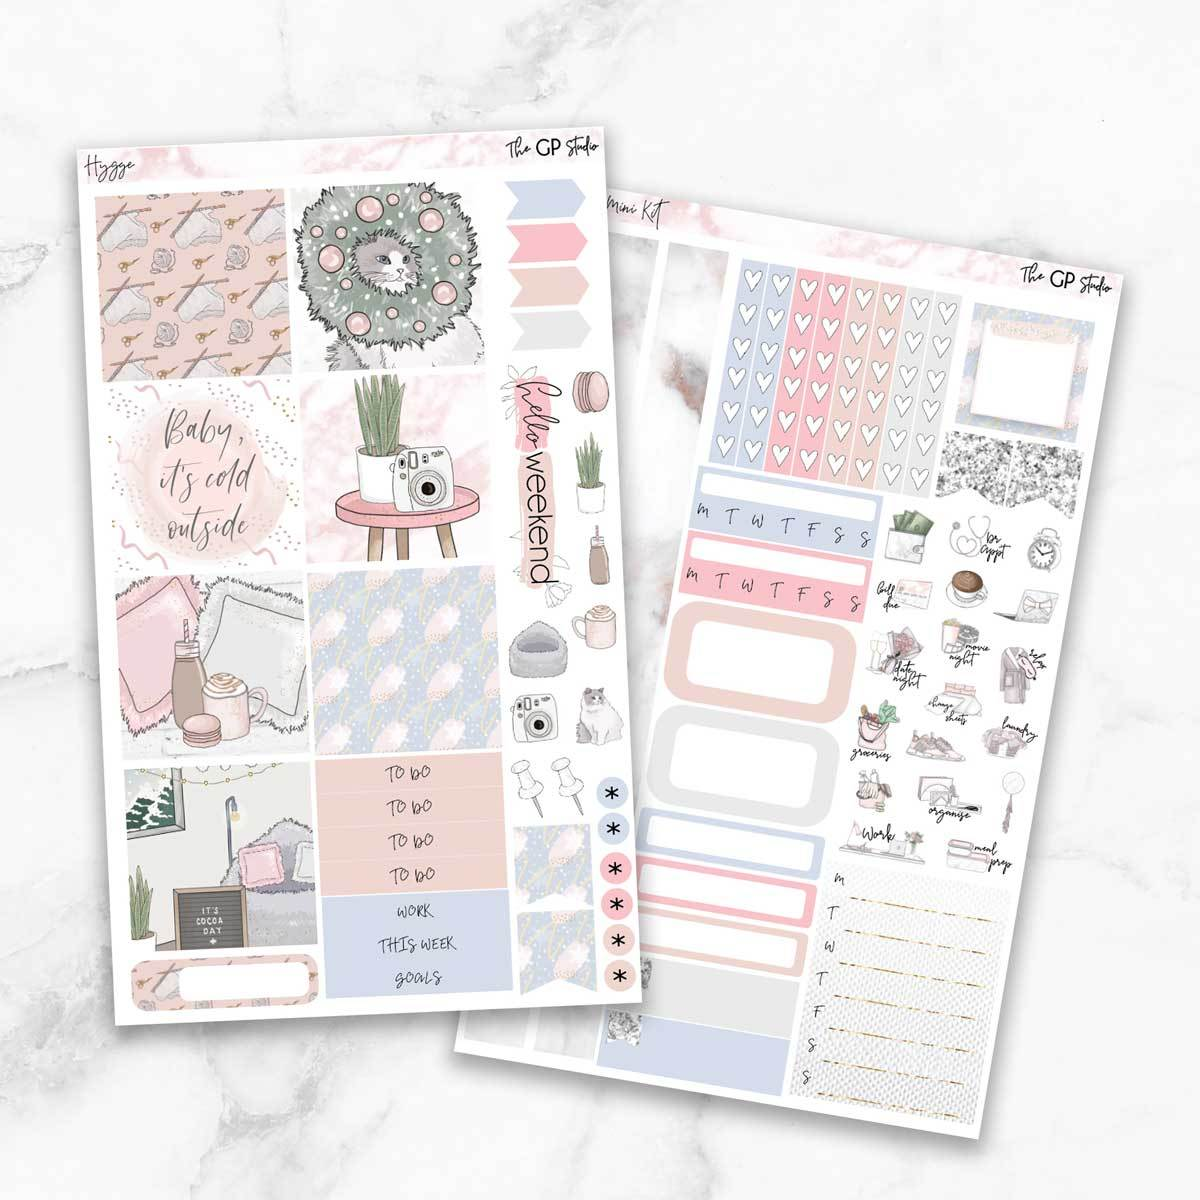 HYGGE Mini Size Planner Sticker Kit-The GP Studio